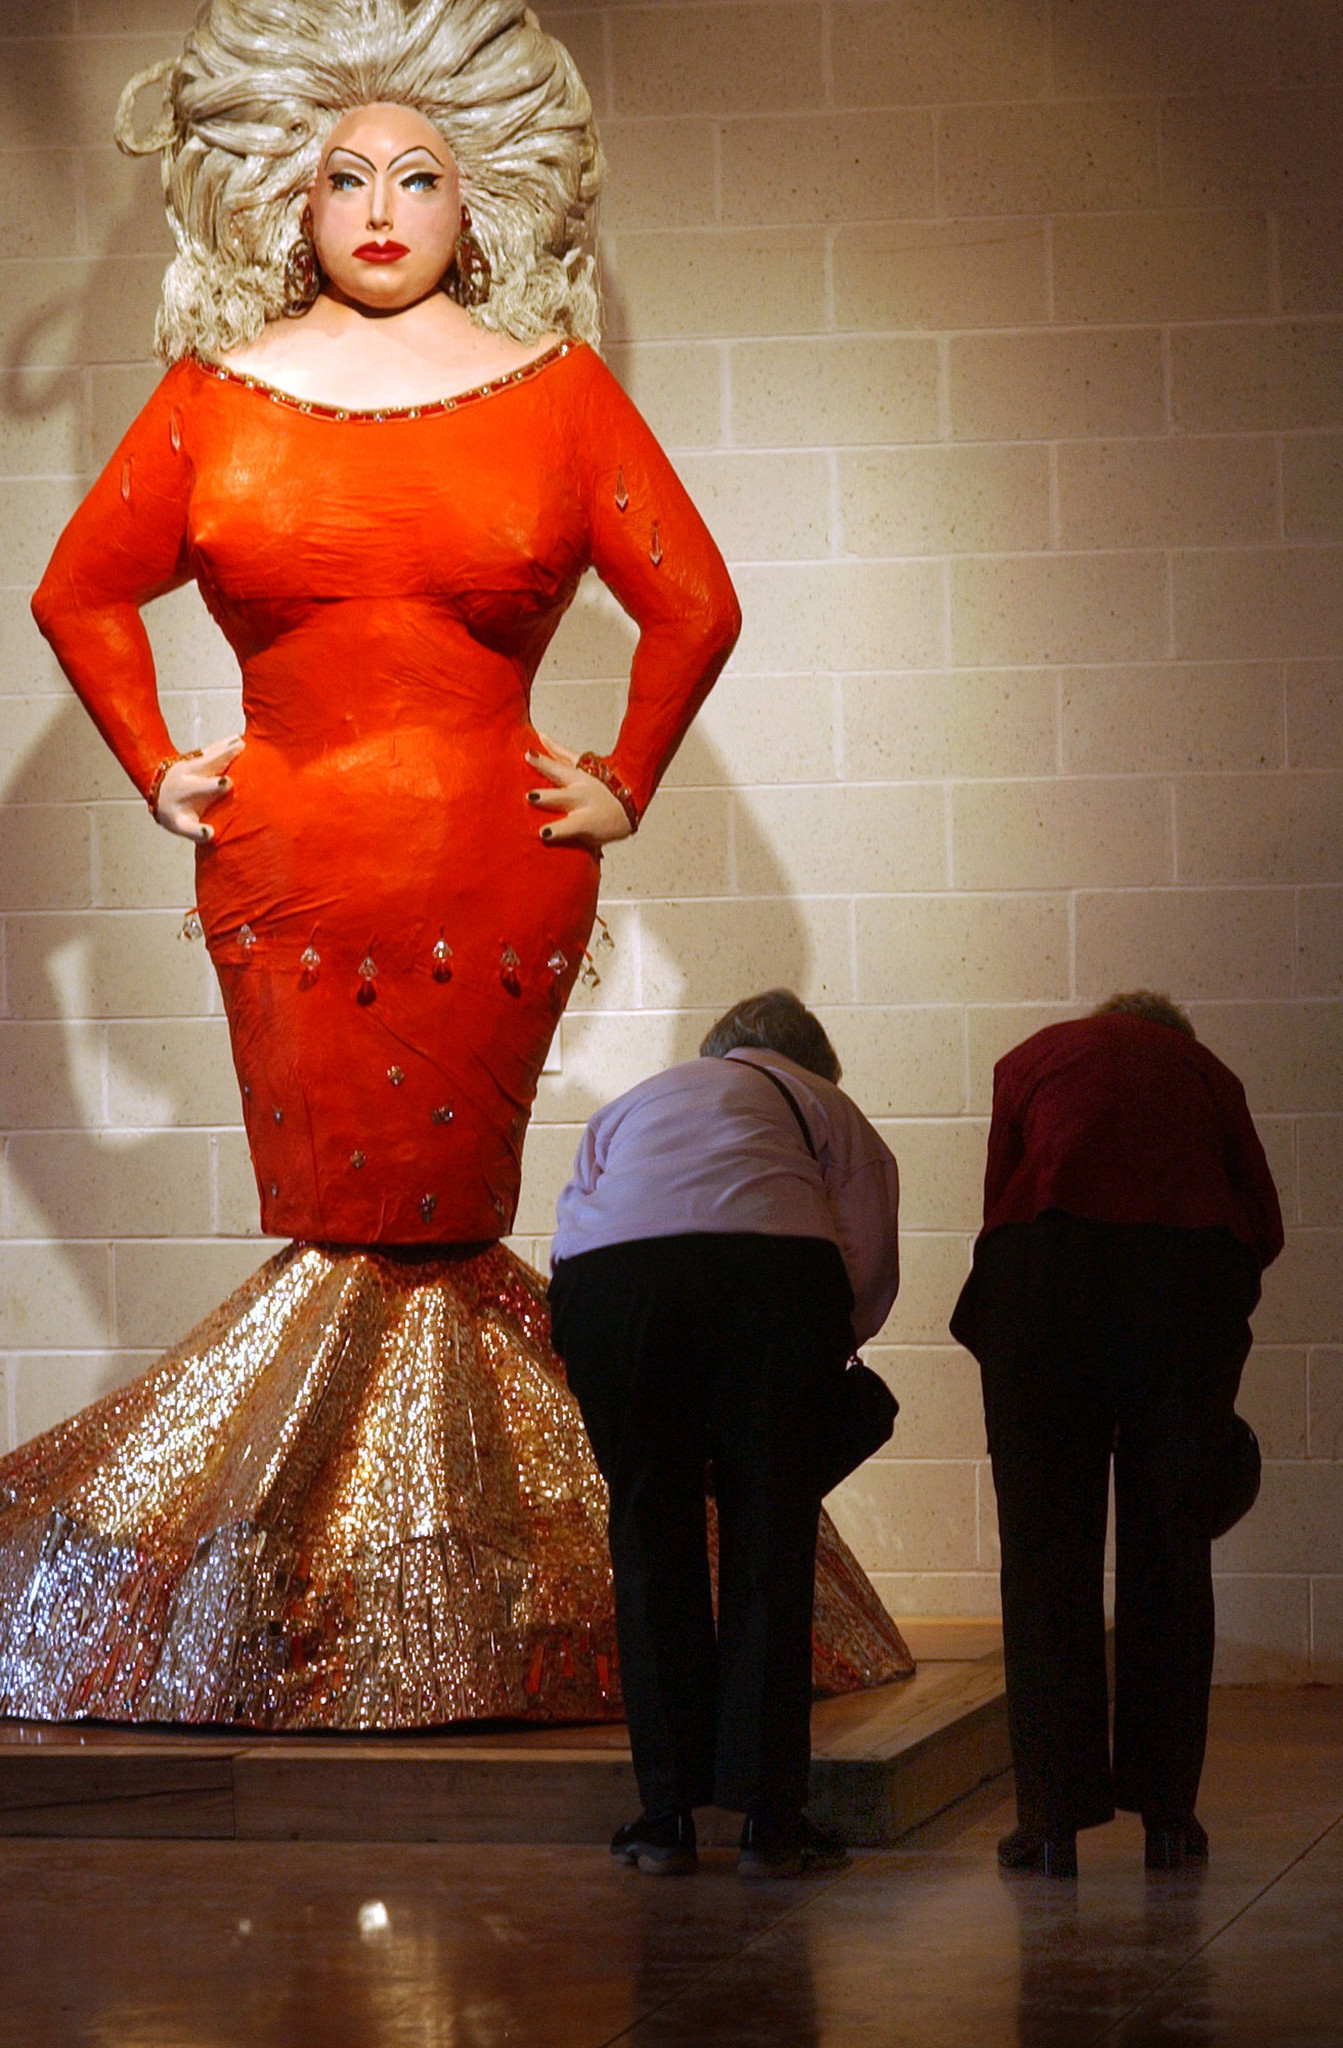 Statue of Divine gets a permanent home at the American Visionary Art Museum  Baltimore Sun